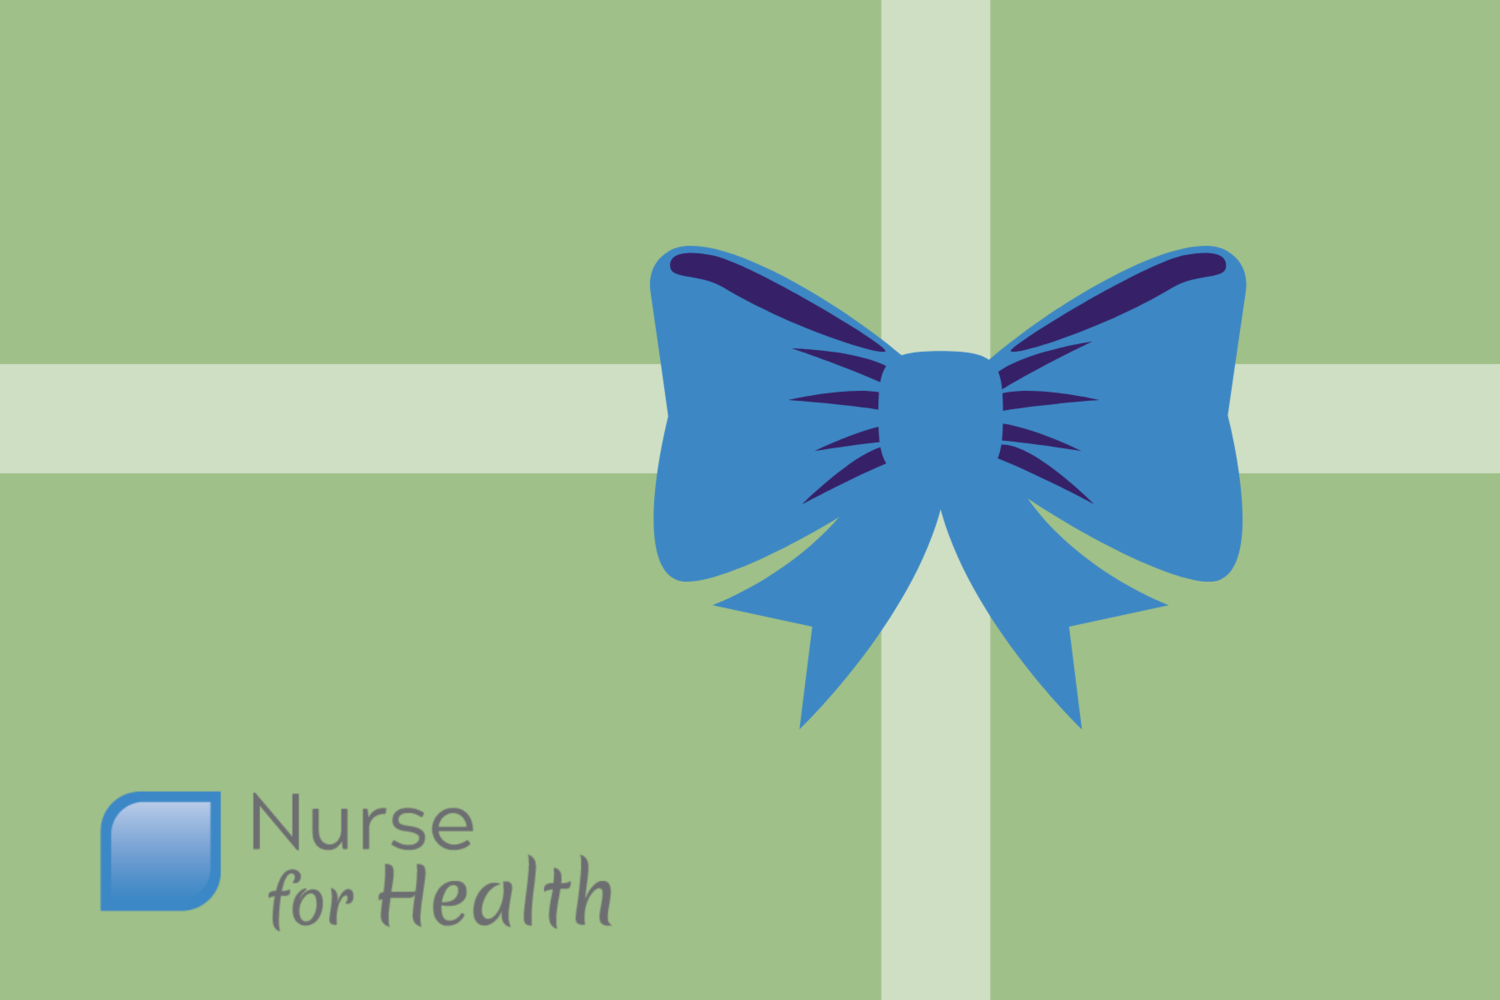 Nurse for Health Gift Card